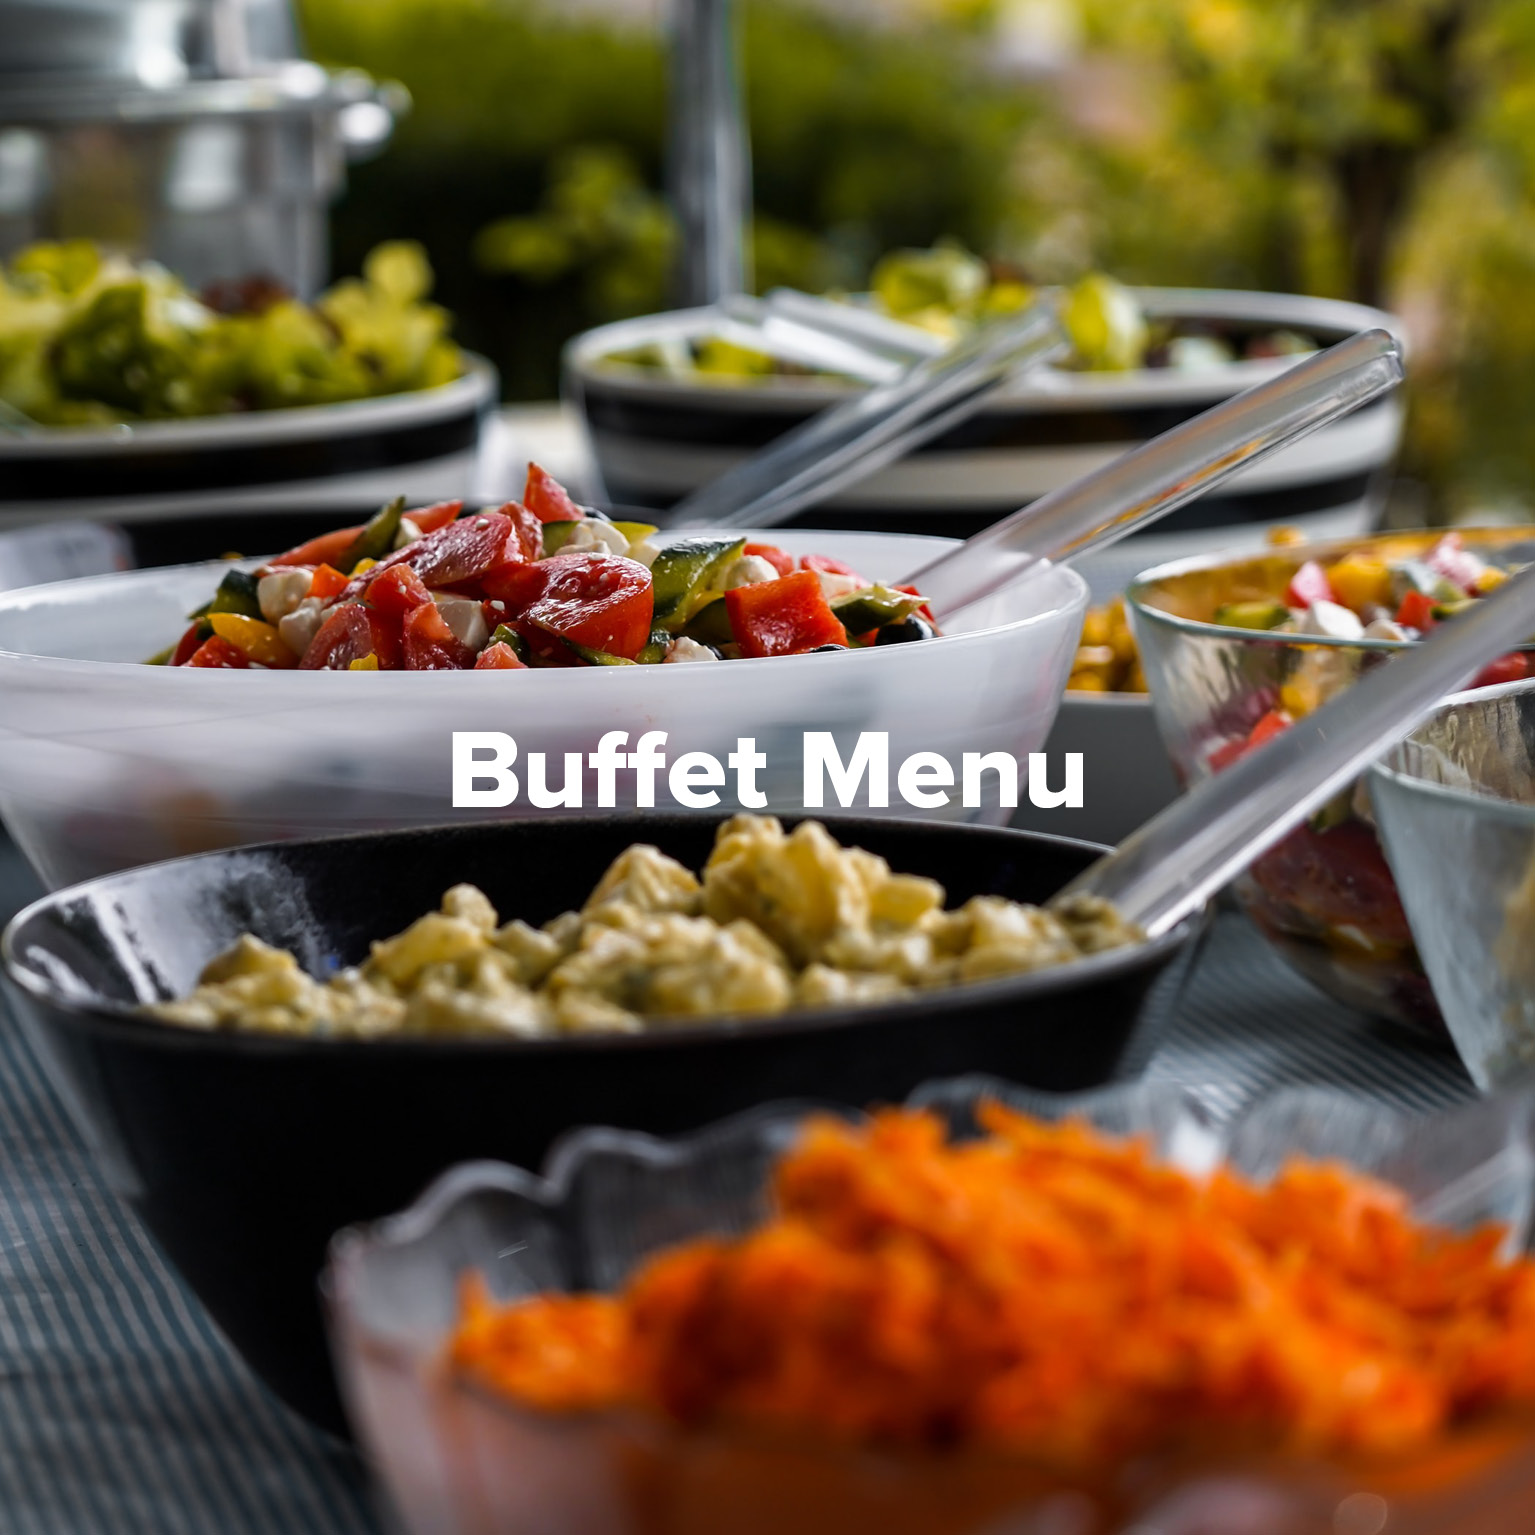 Buffet Menu at Rowers on Cooks River